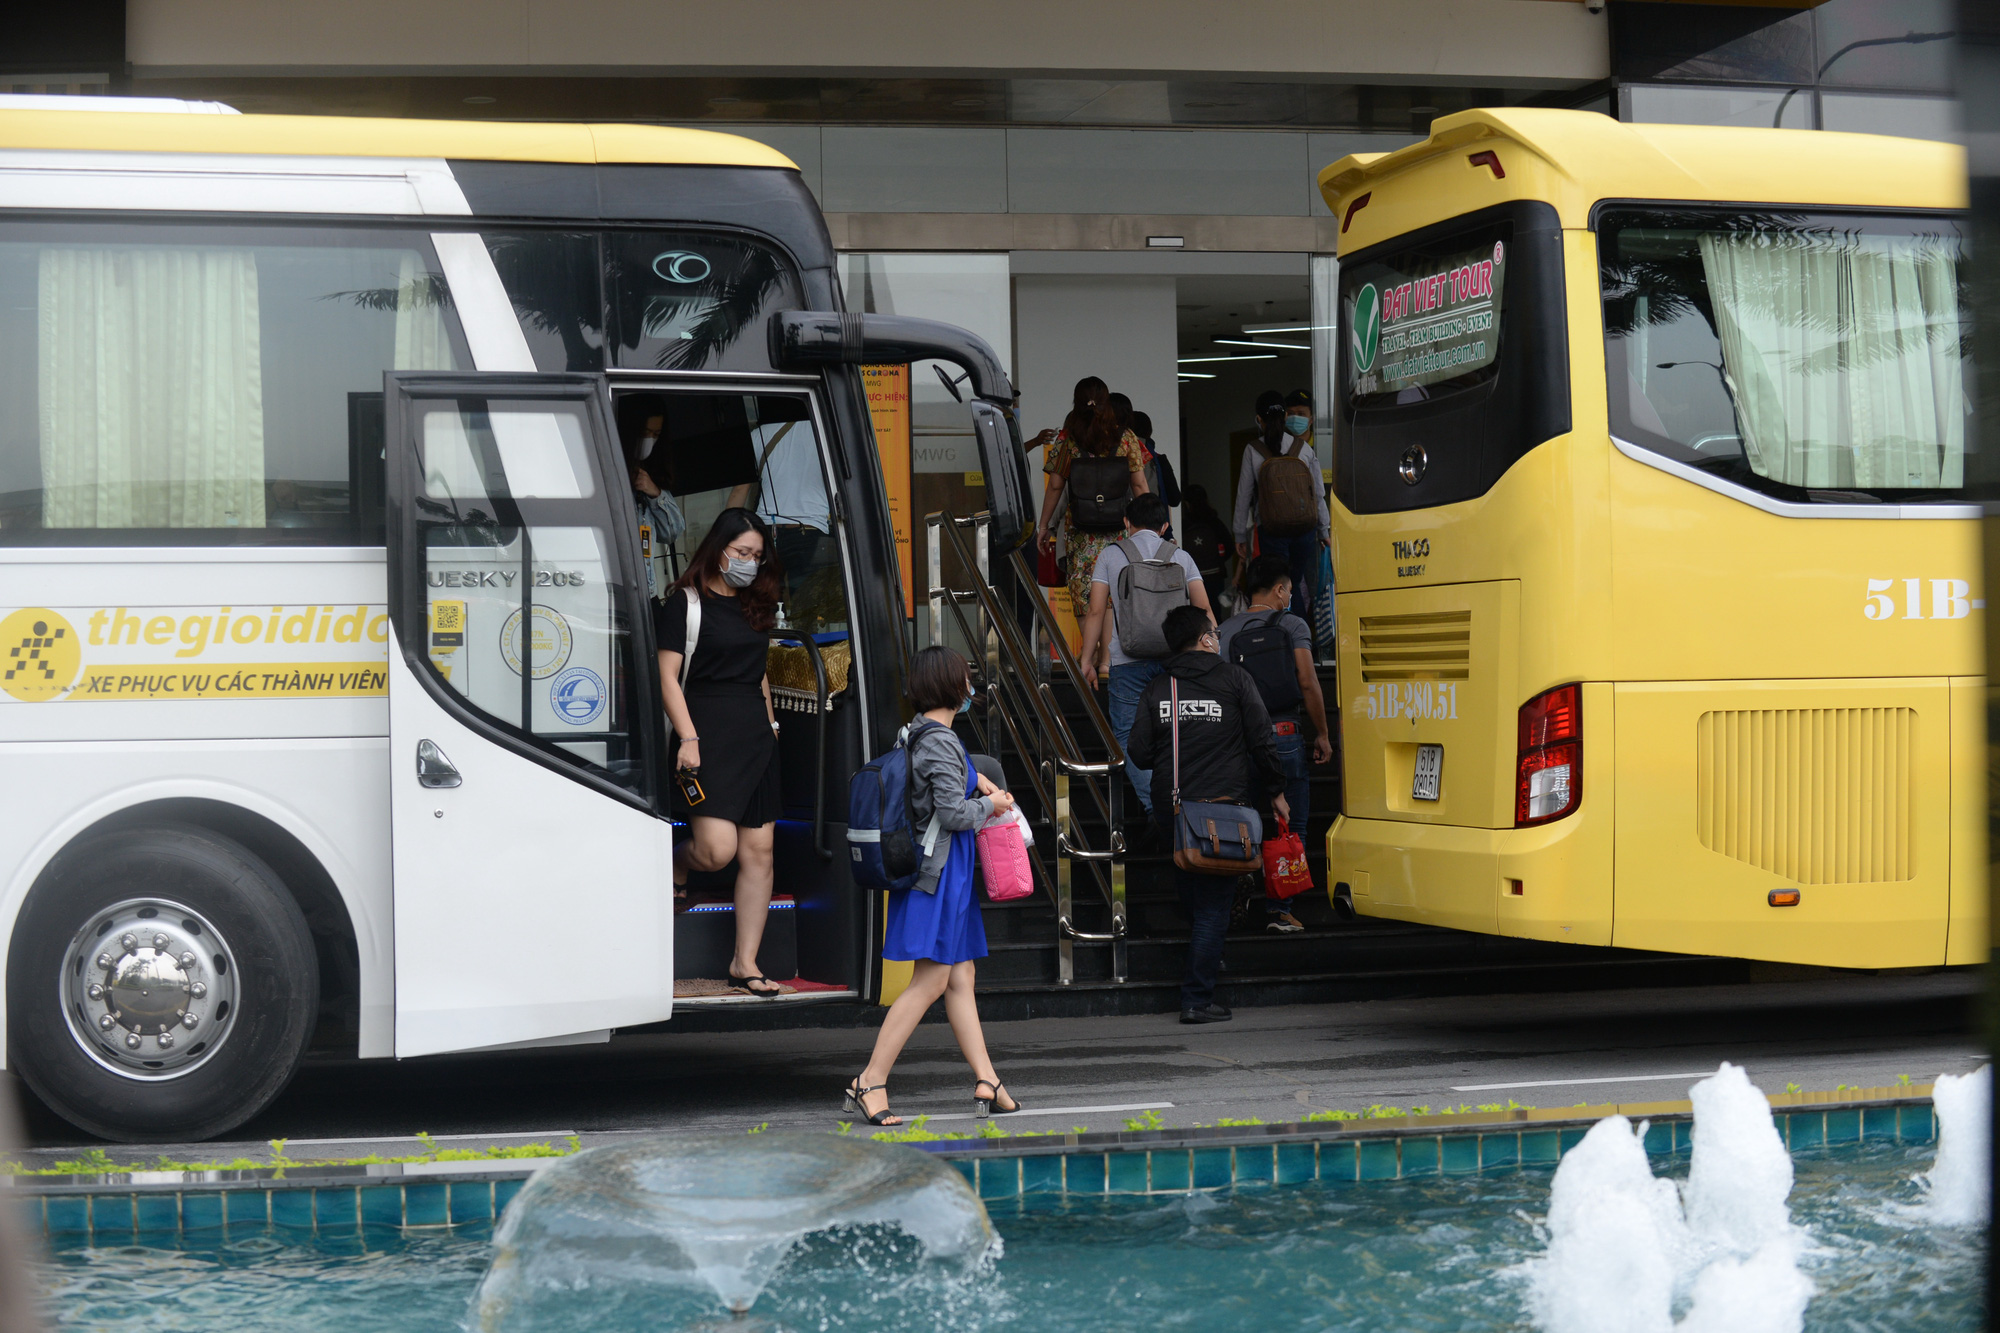 Employees of a company headquartered in the Saigon High-Tech Park in District 9, Ho Chi Minh City get off a company shuttle bus. Photo: T.T.D. / Tuoi Tre